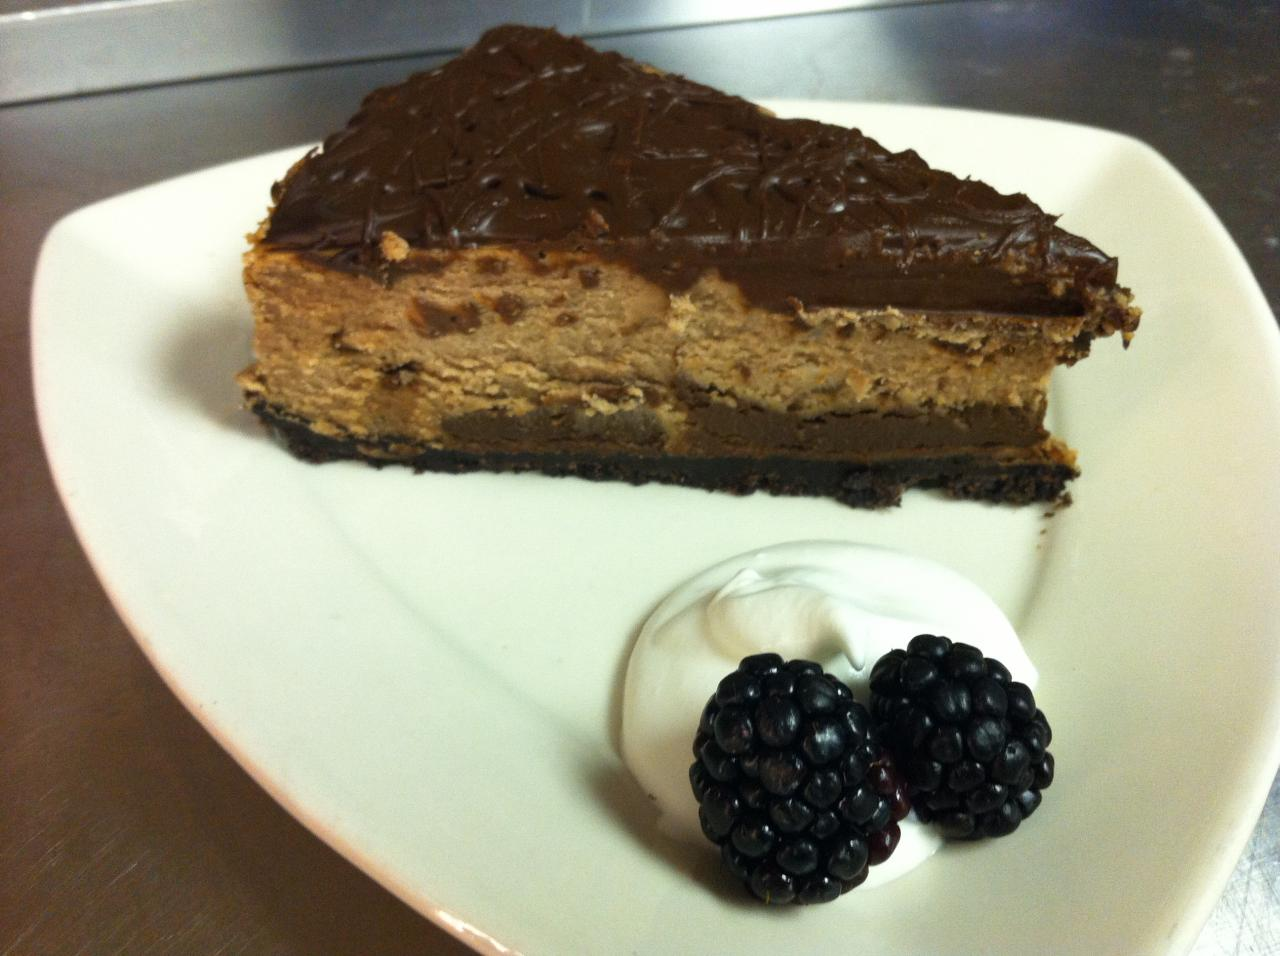 Homemade Chocolate Truffle Cheesecake